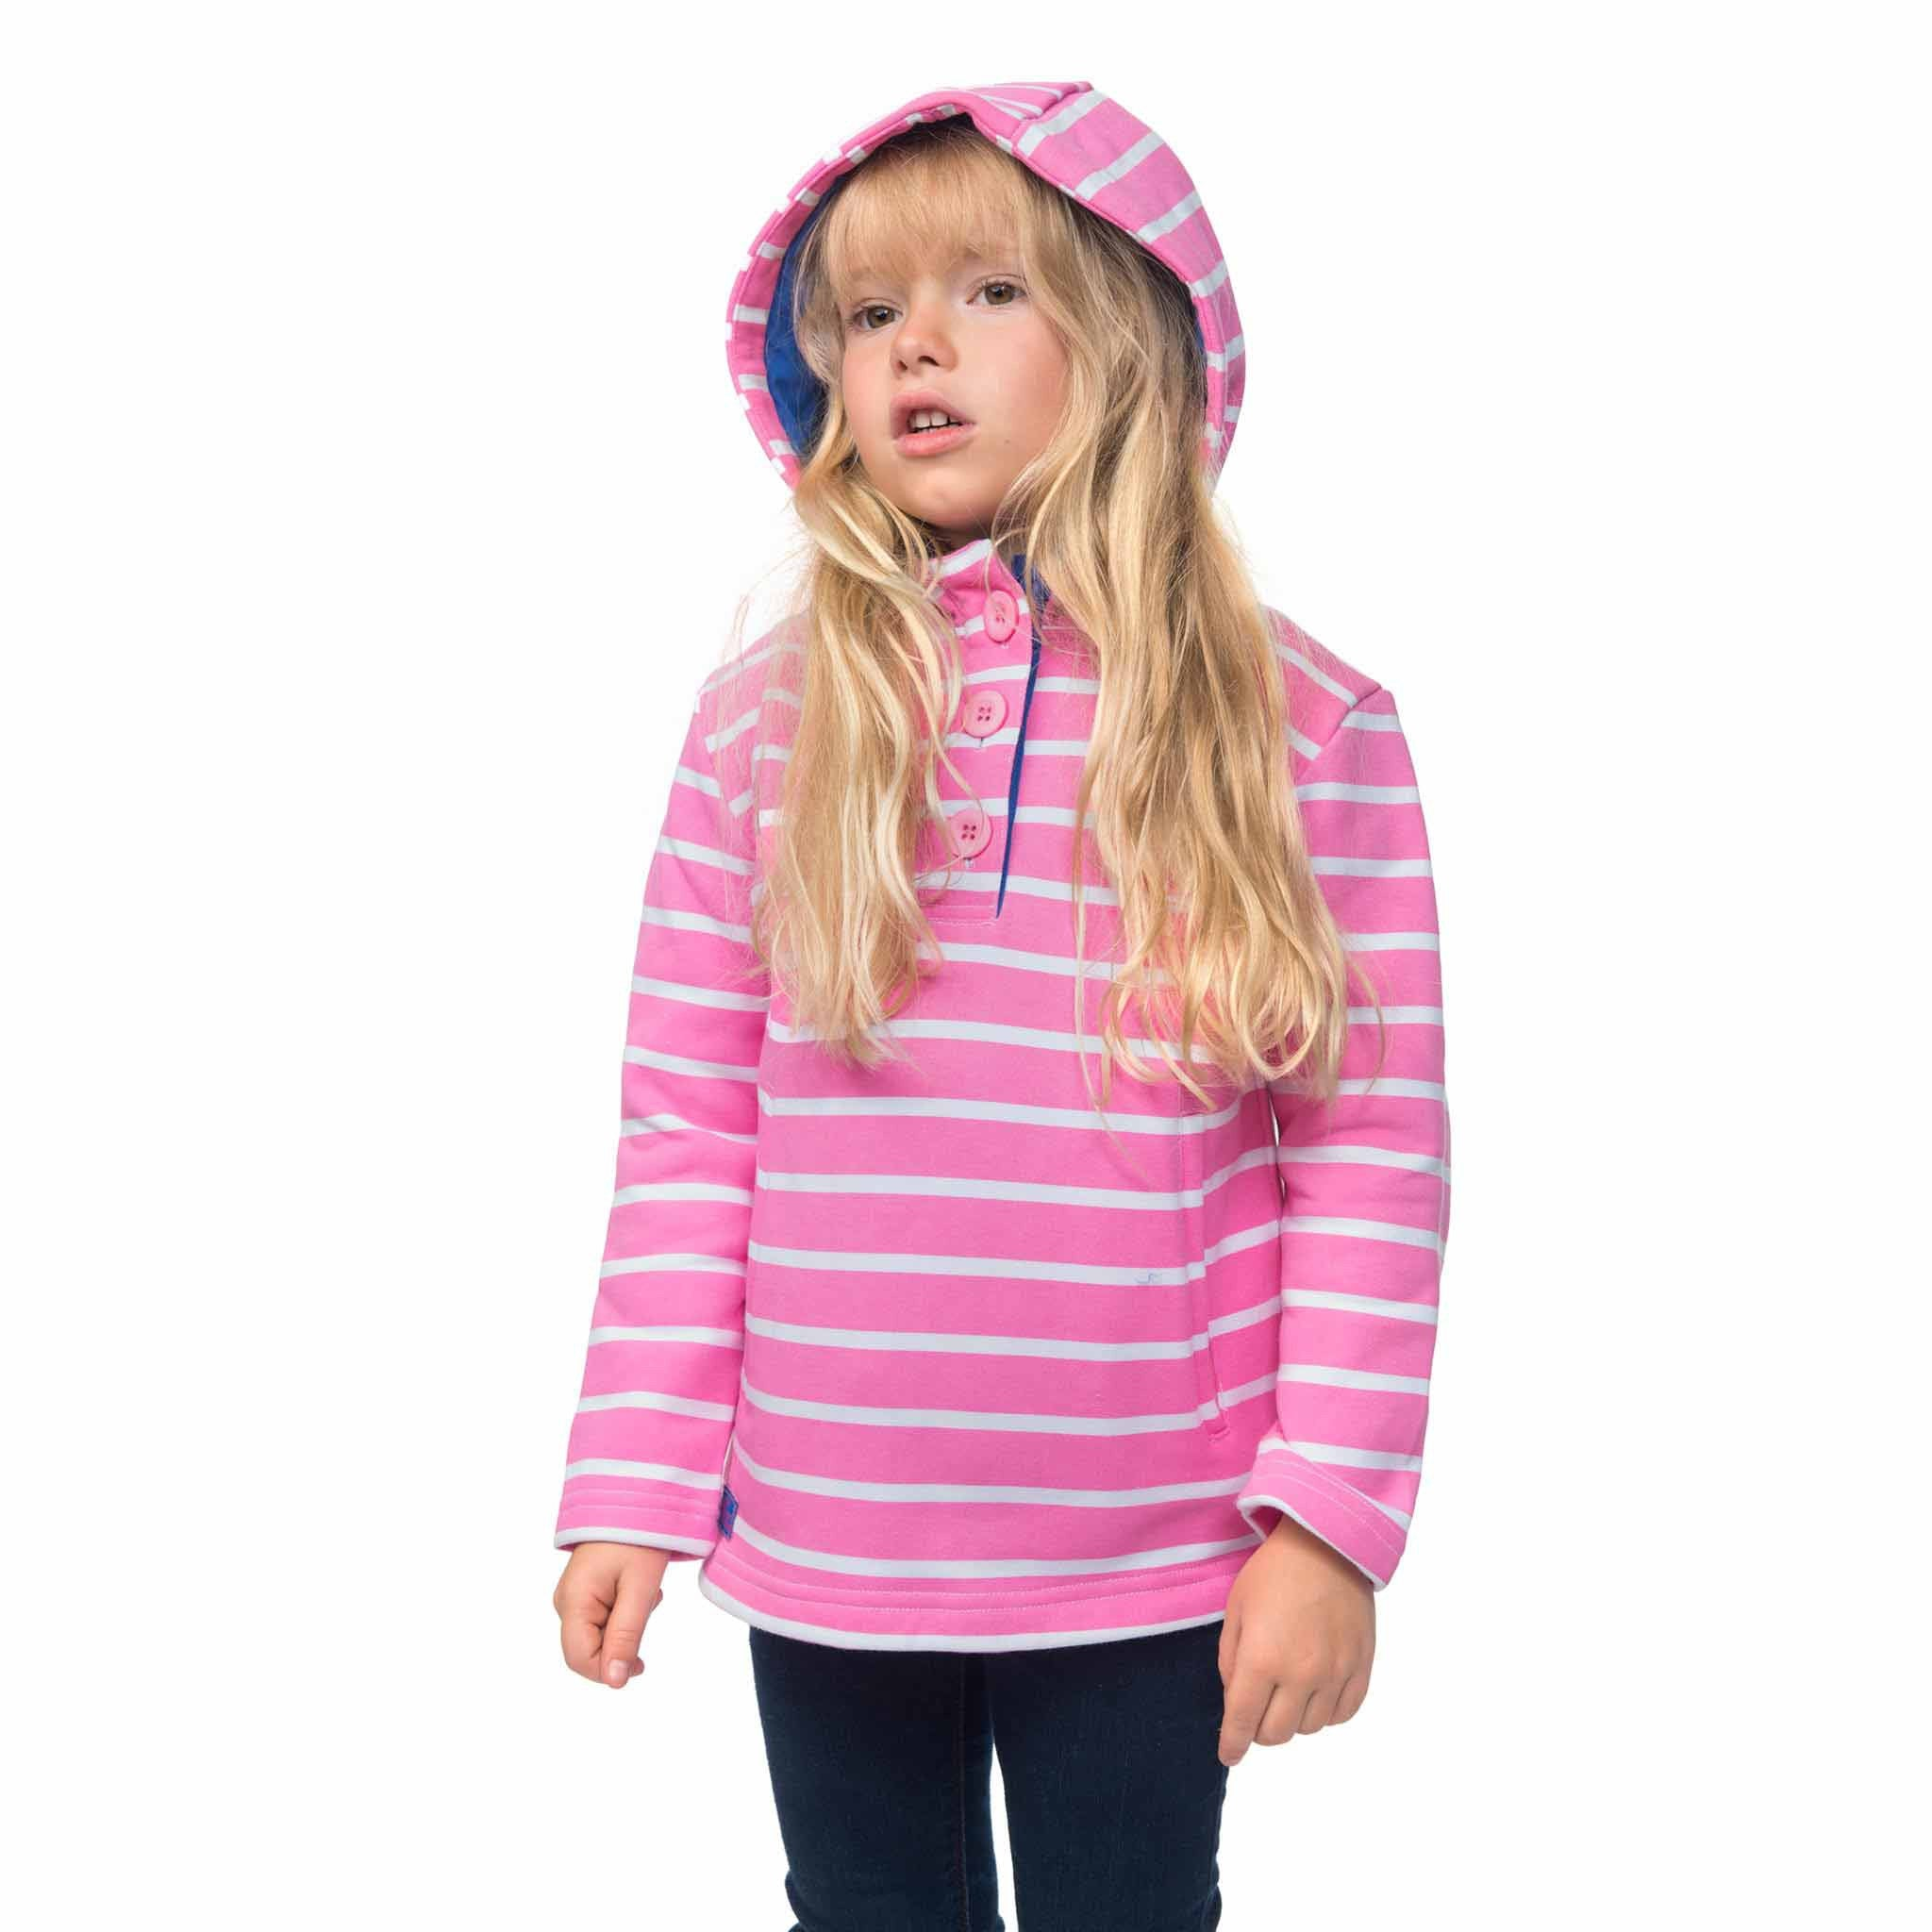 Lighthouse Girls' Maddy Cotton Jersey Sweatshirt in Pink and White Stripe. Half Buttoned. Hood up.